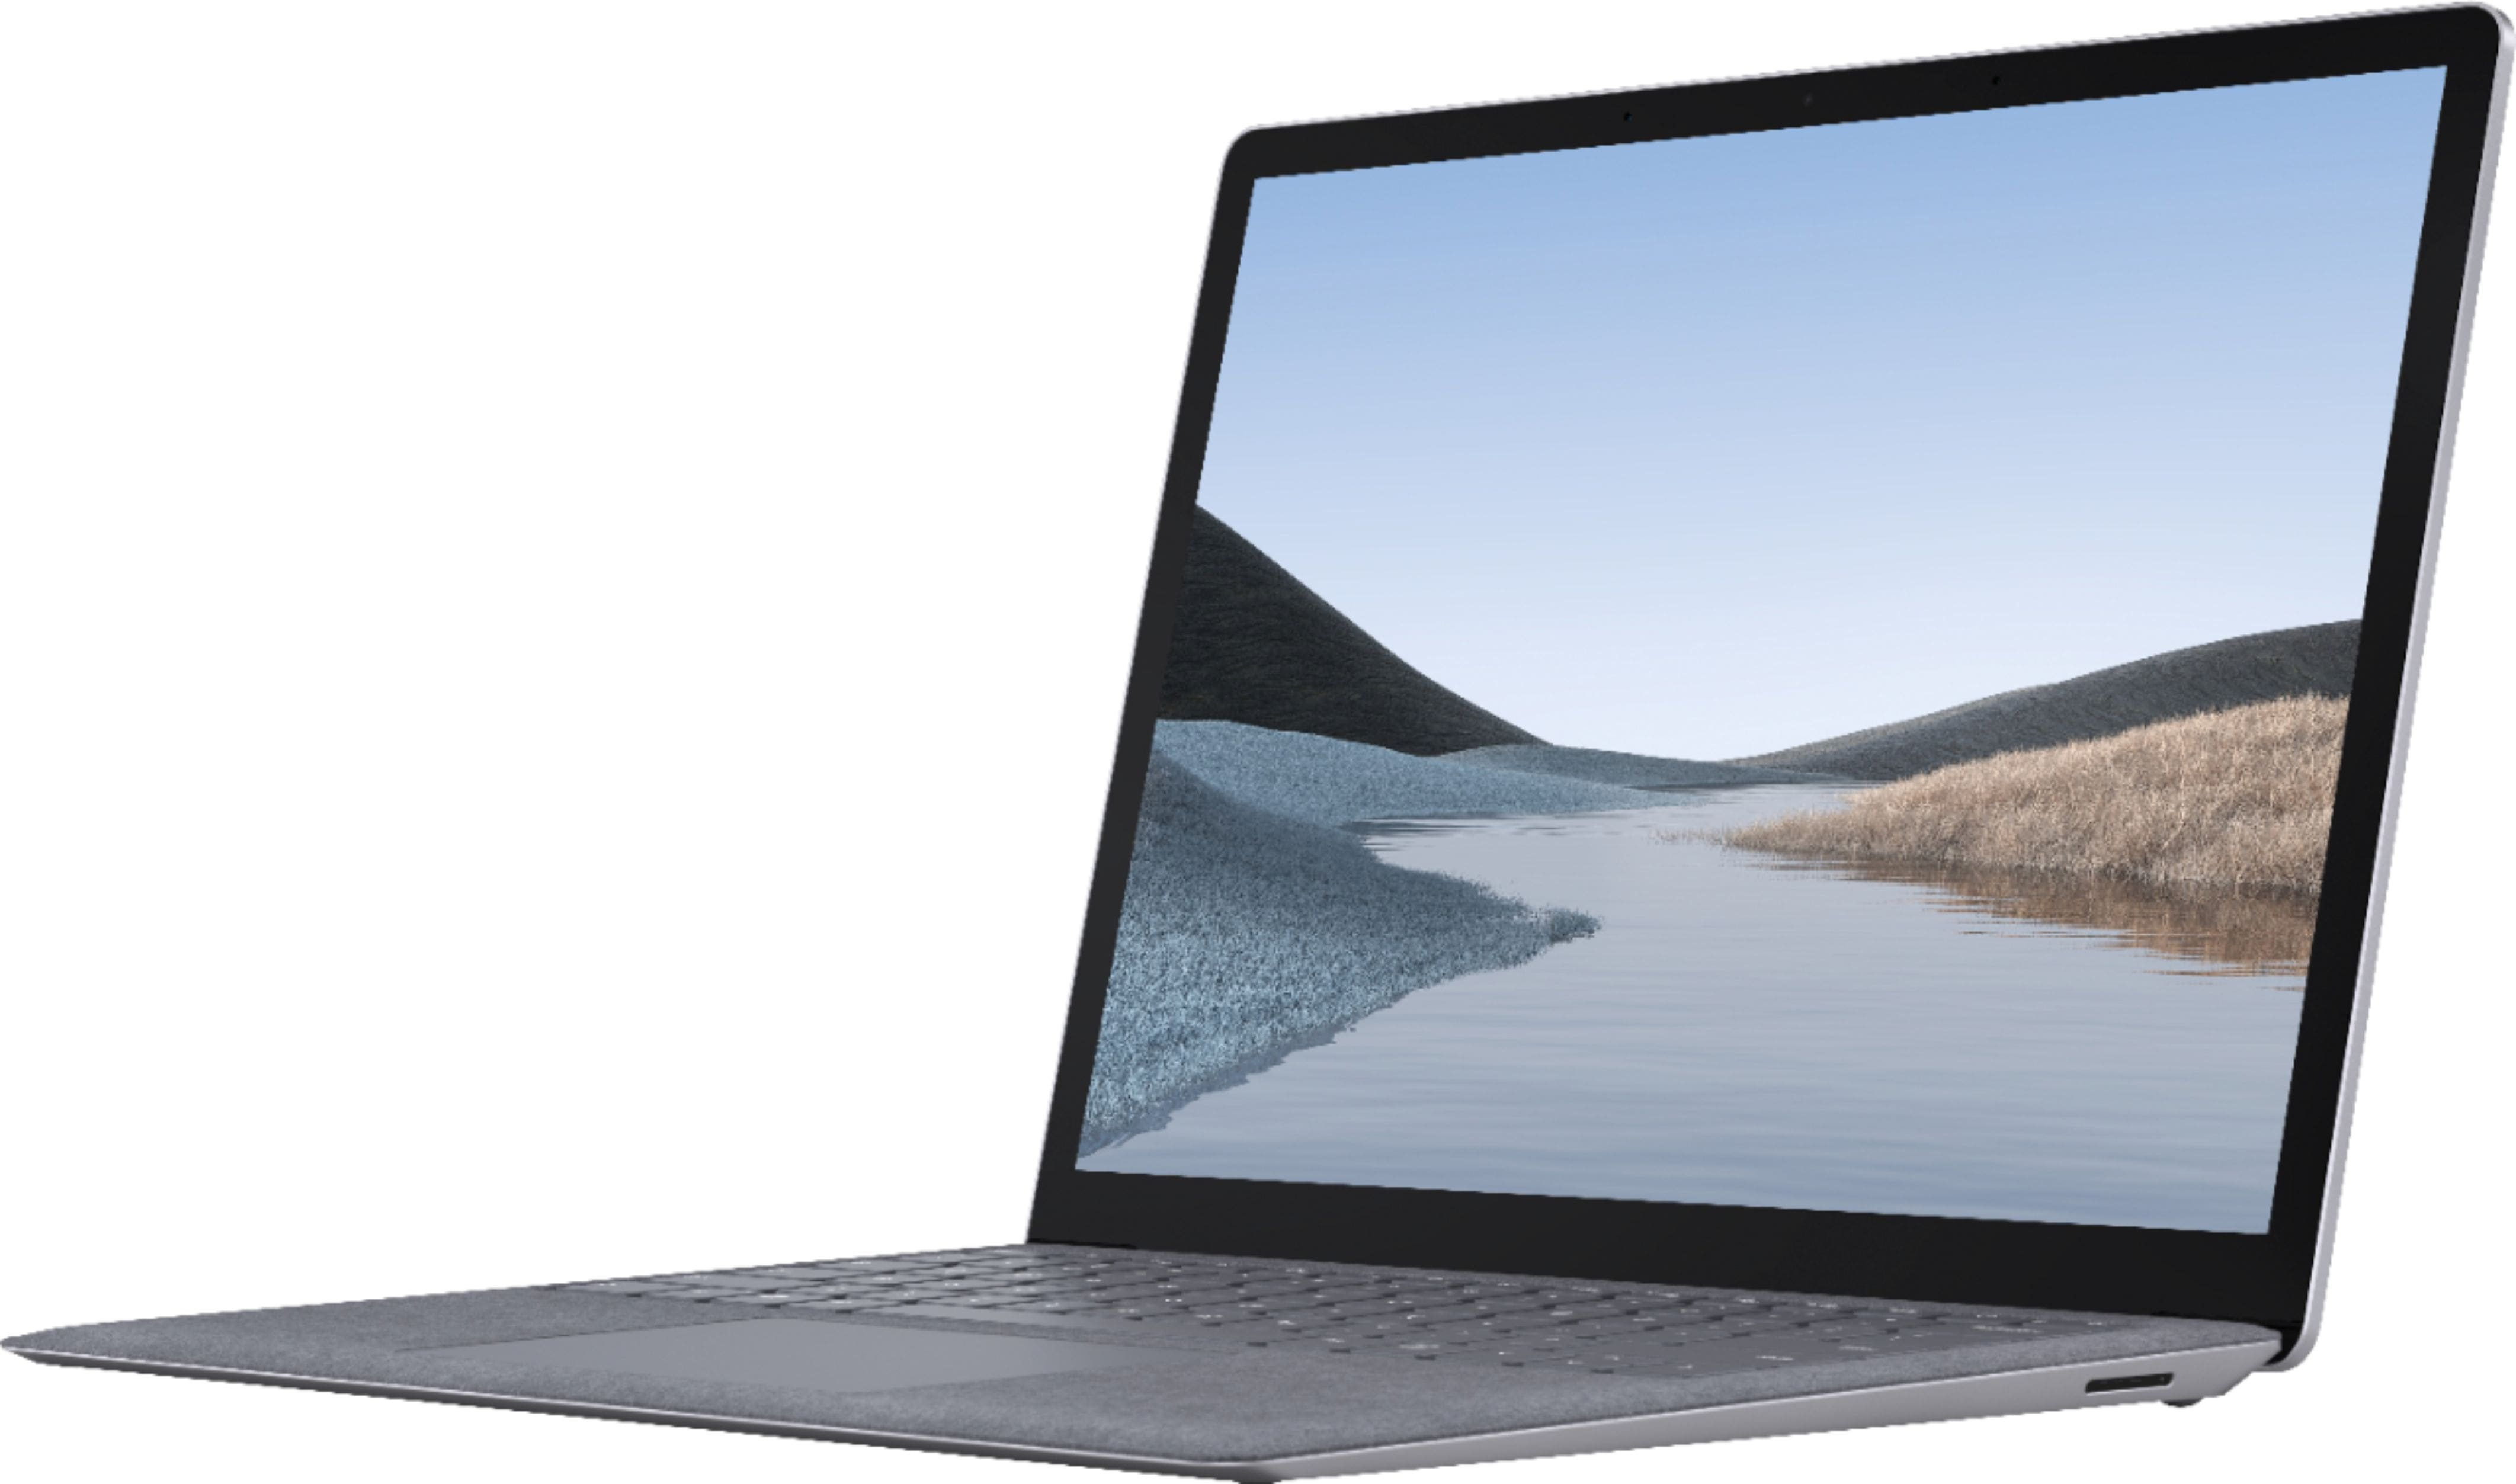 "Student Deal - Surface Laptop 3 13.5"" i5/8GB/128GB $799.99"